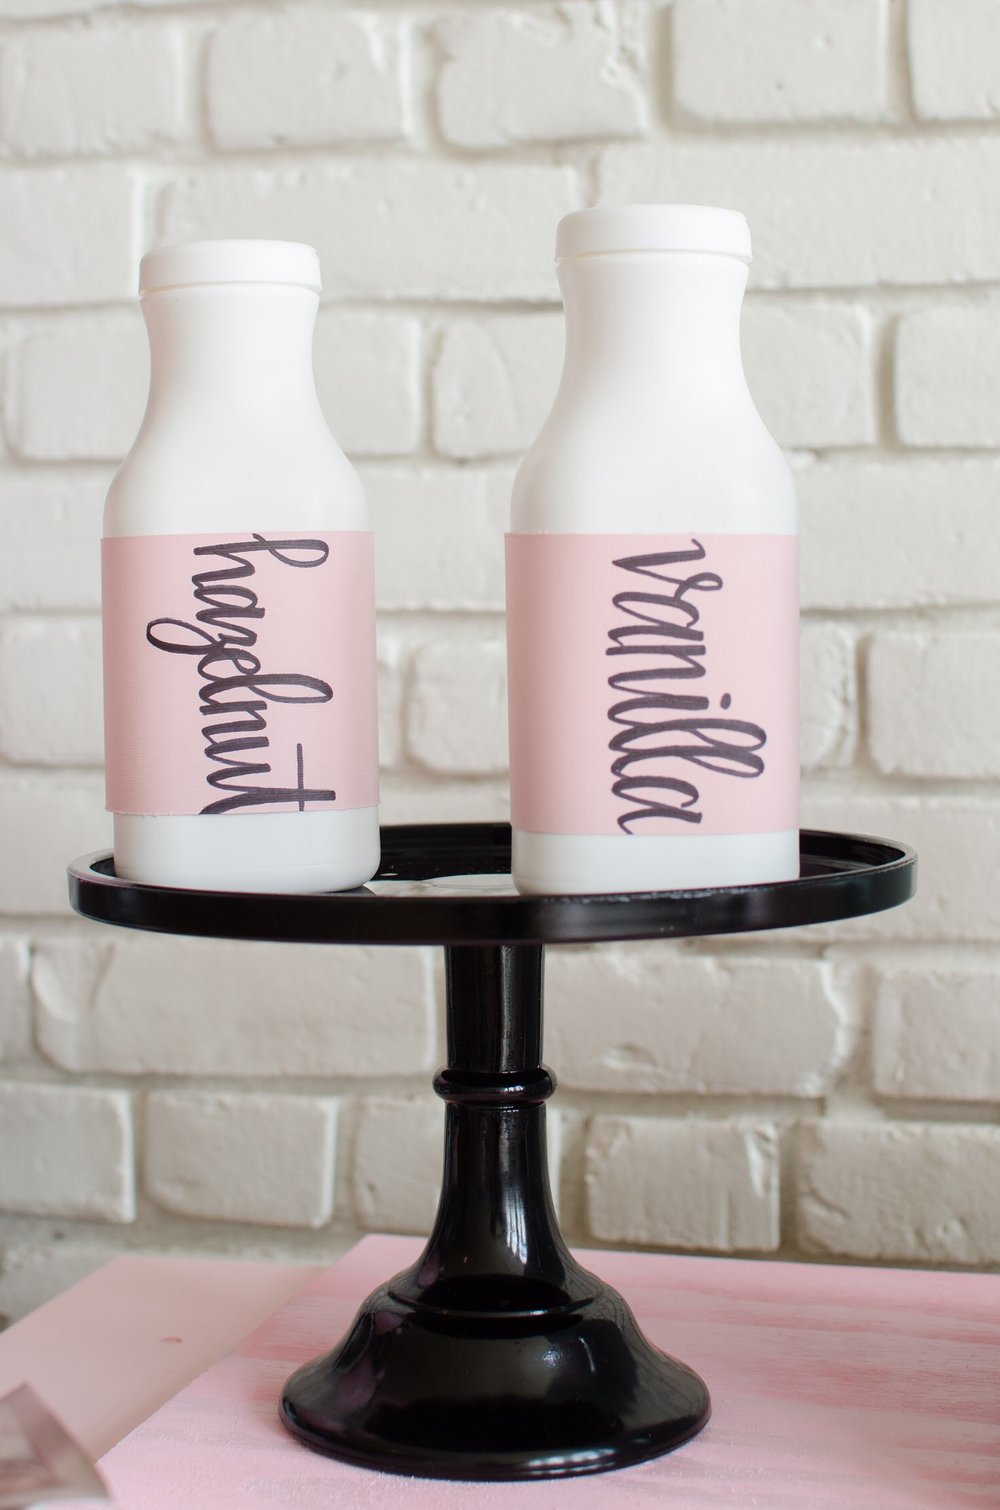 Milk jugs make the perfect addition to this coffee bar!